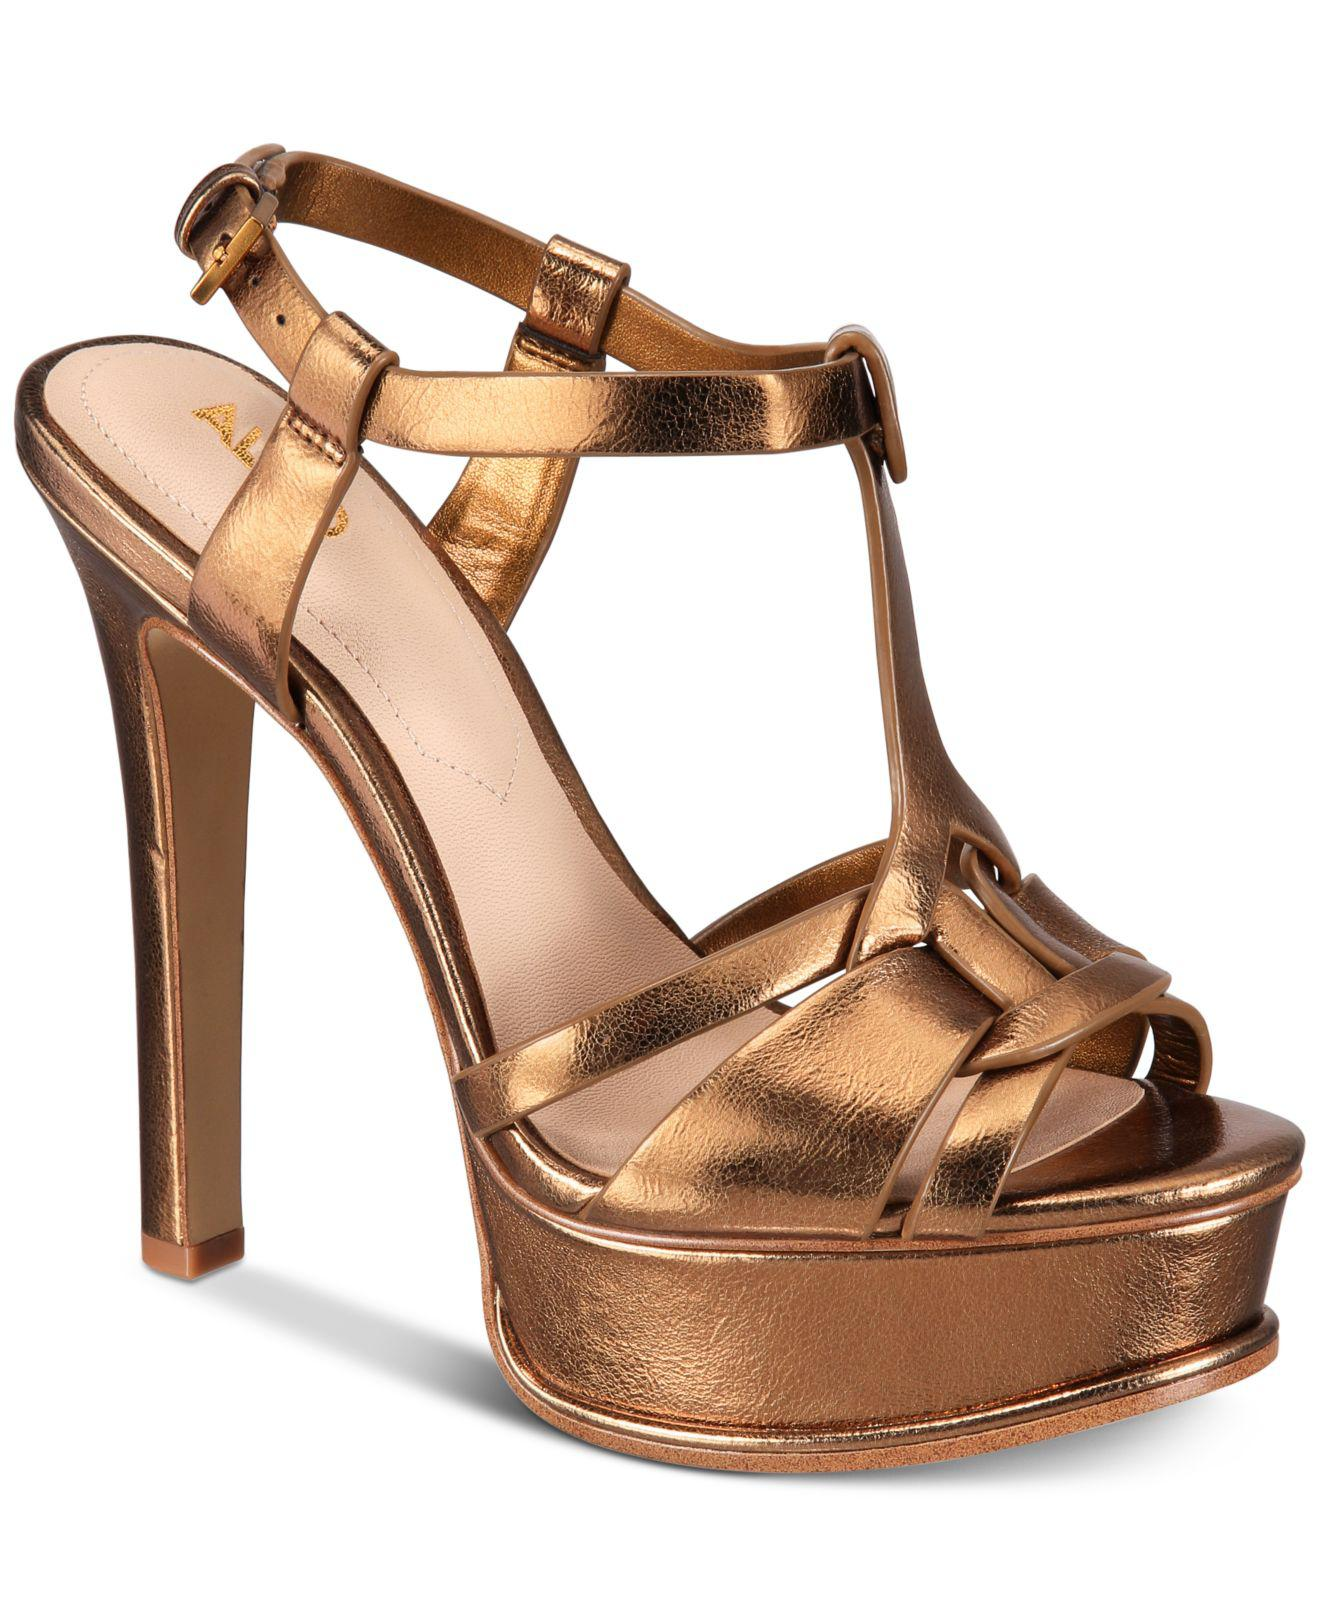 88c7fa4d345 Lyst - ALDO Chelly Platform Dress Sandals